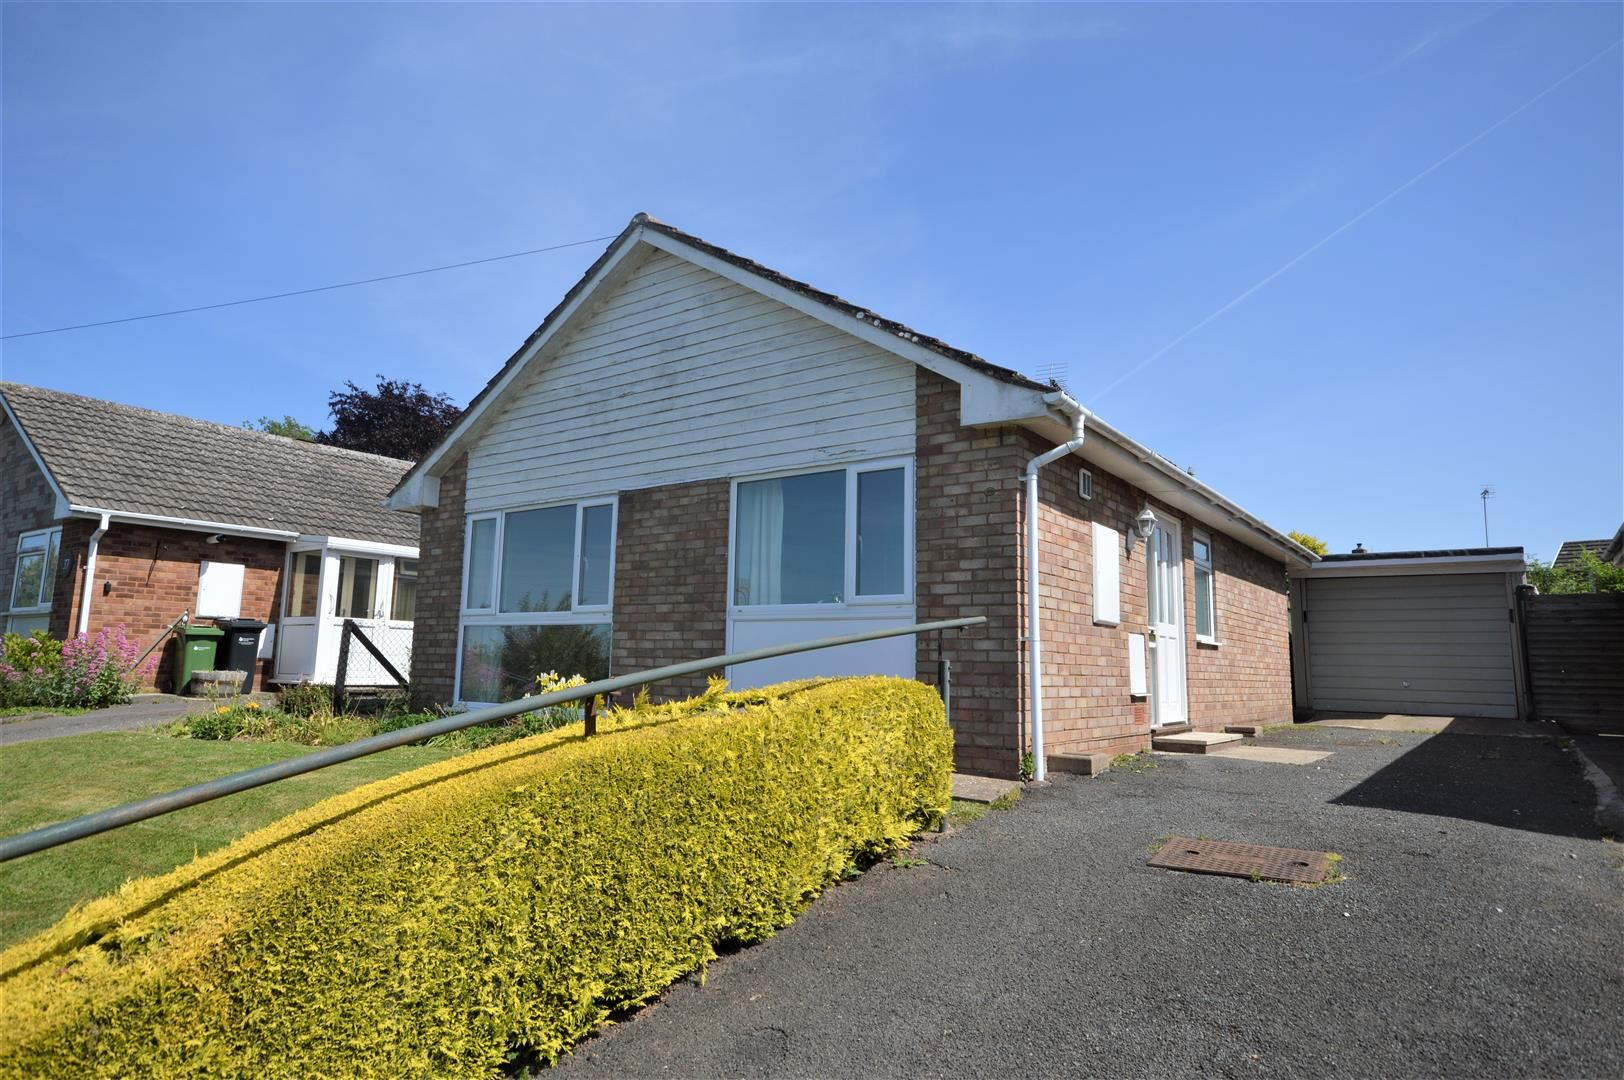 2 bed detached-bungalow for sale in Leominster - Property Image 1